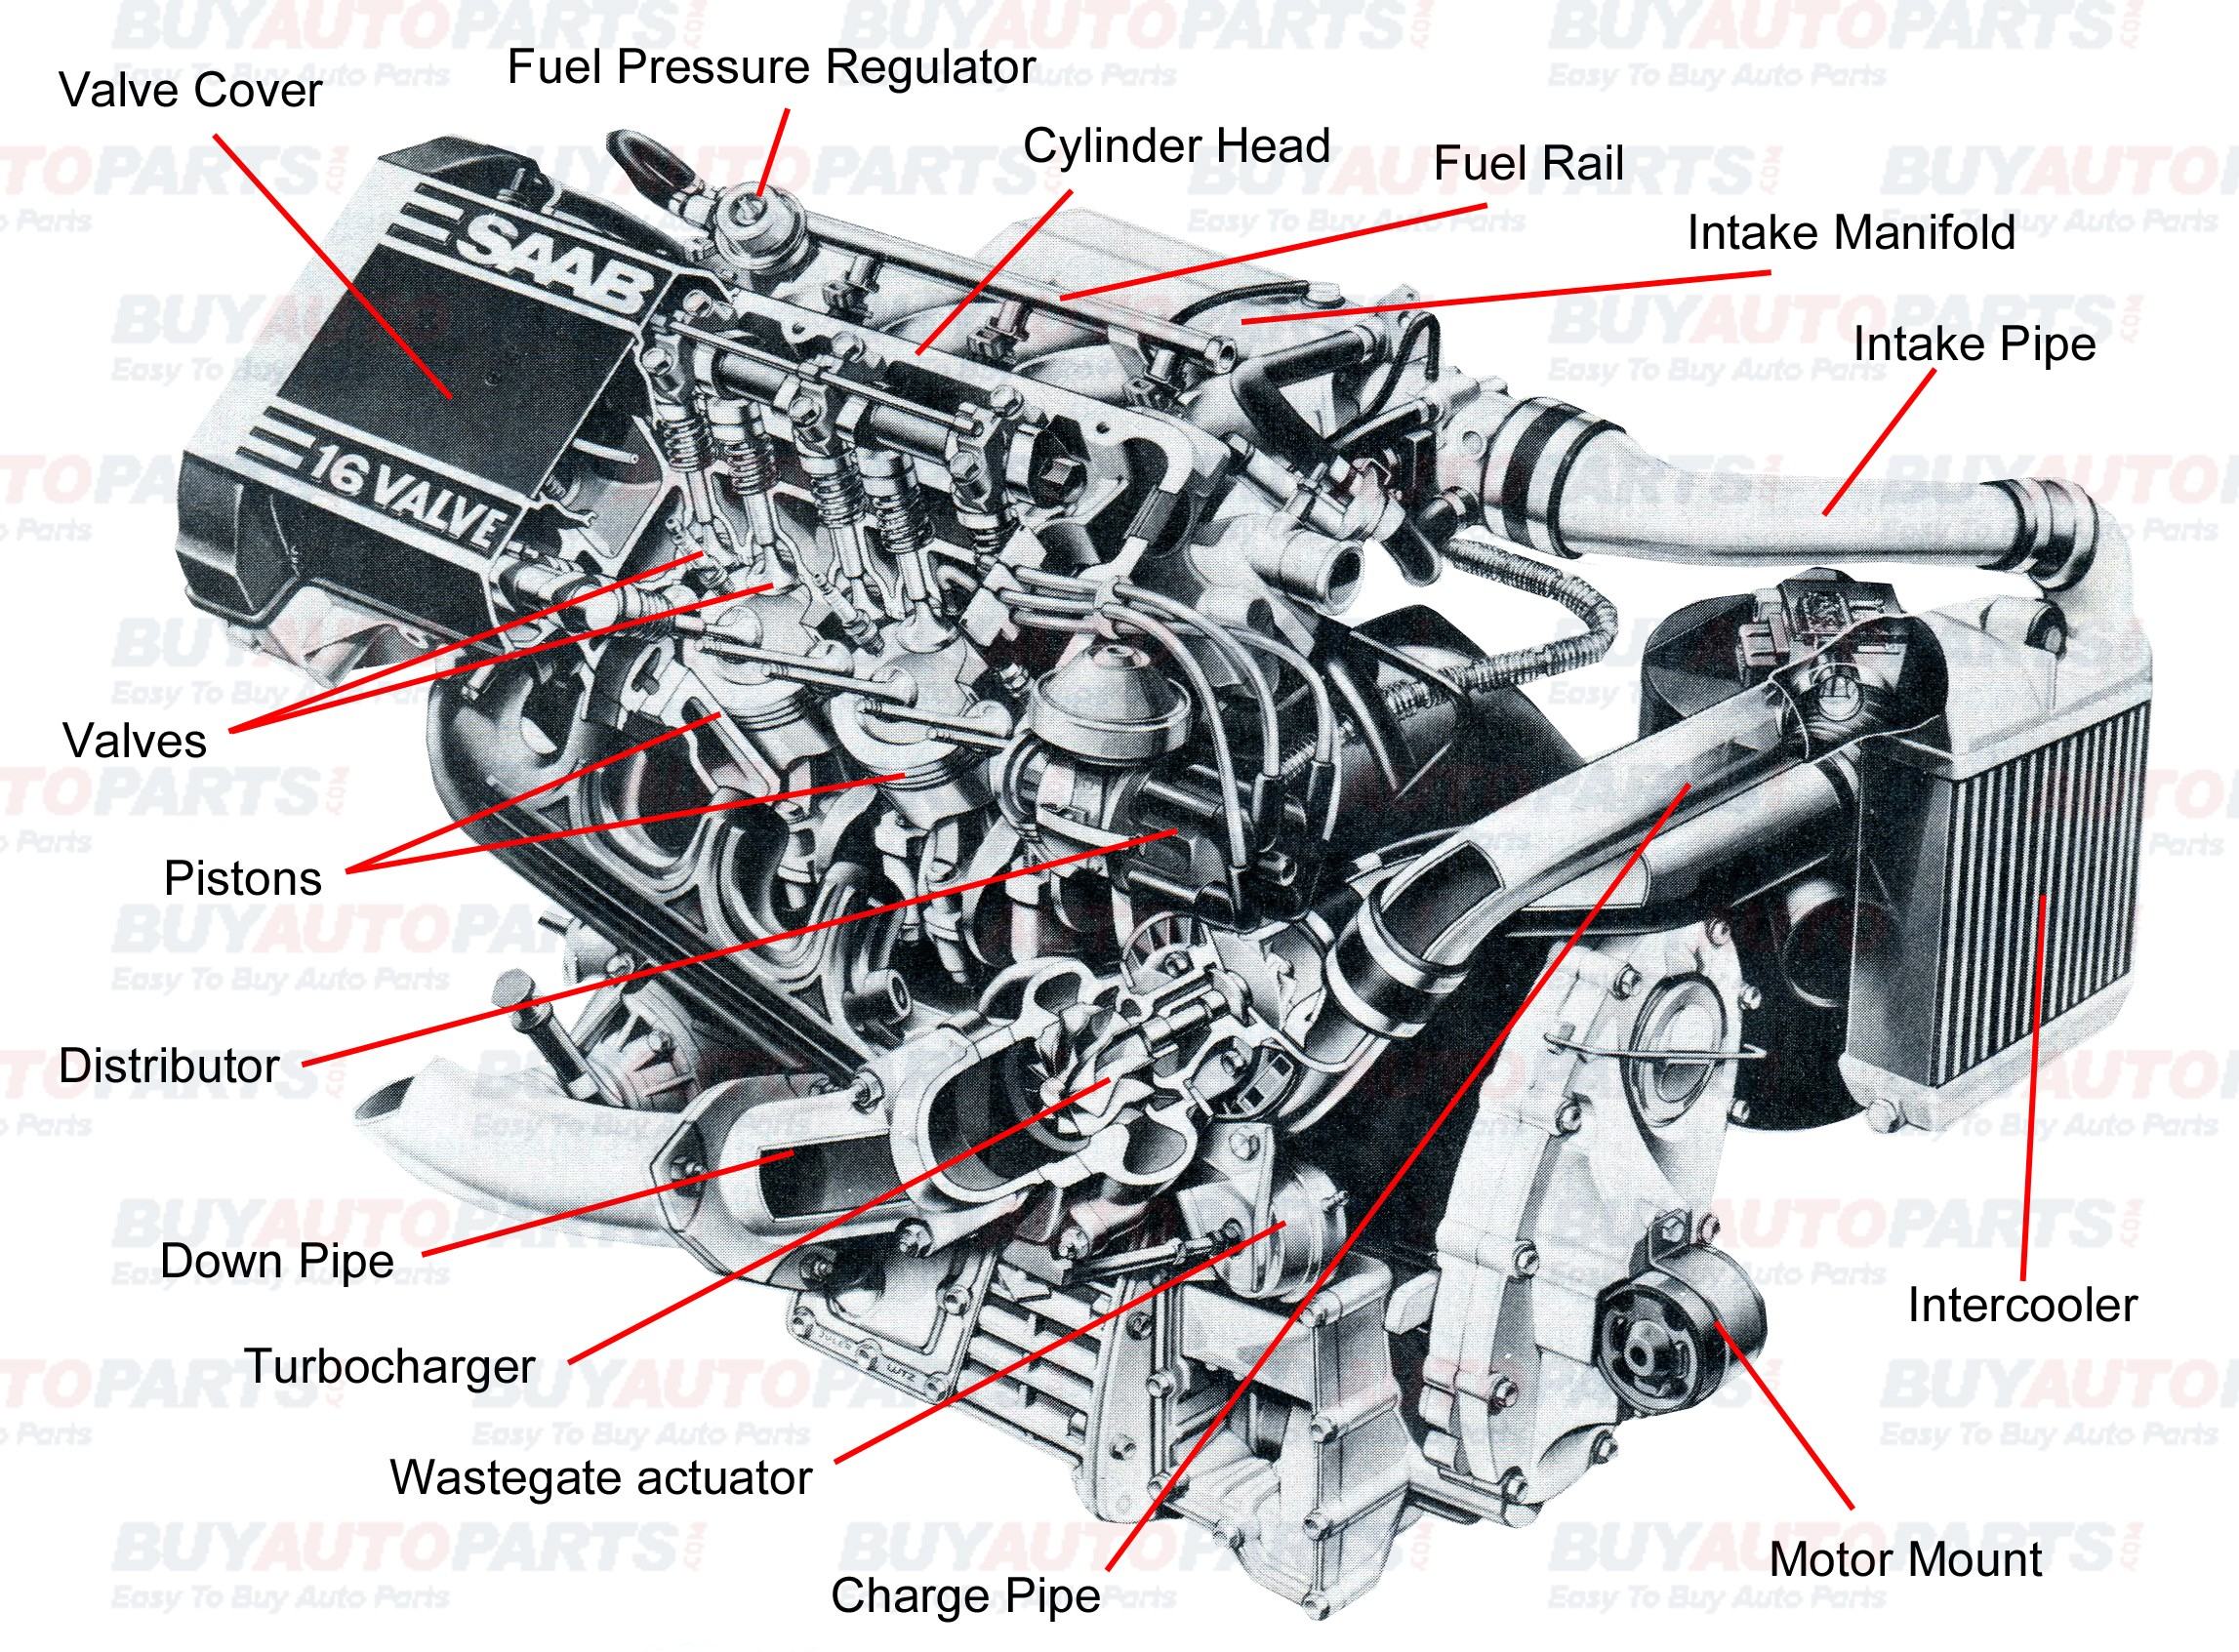 Diagrams Of Car Engines Car Engine Diagram Simple Overview the Engine Wiring Diagram Week Of Diagrams Of Car Engines